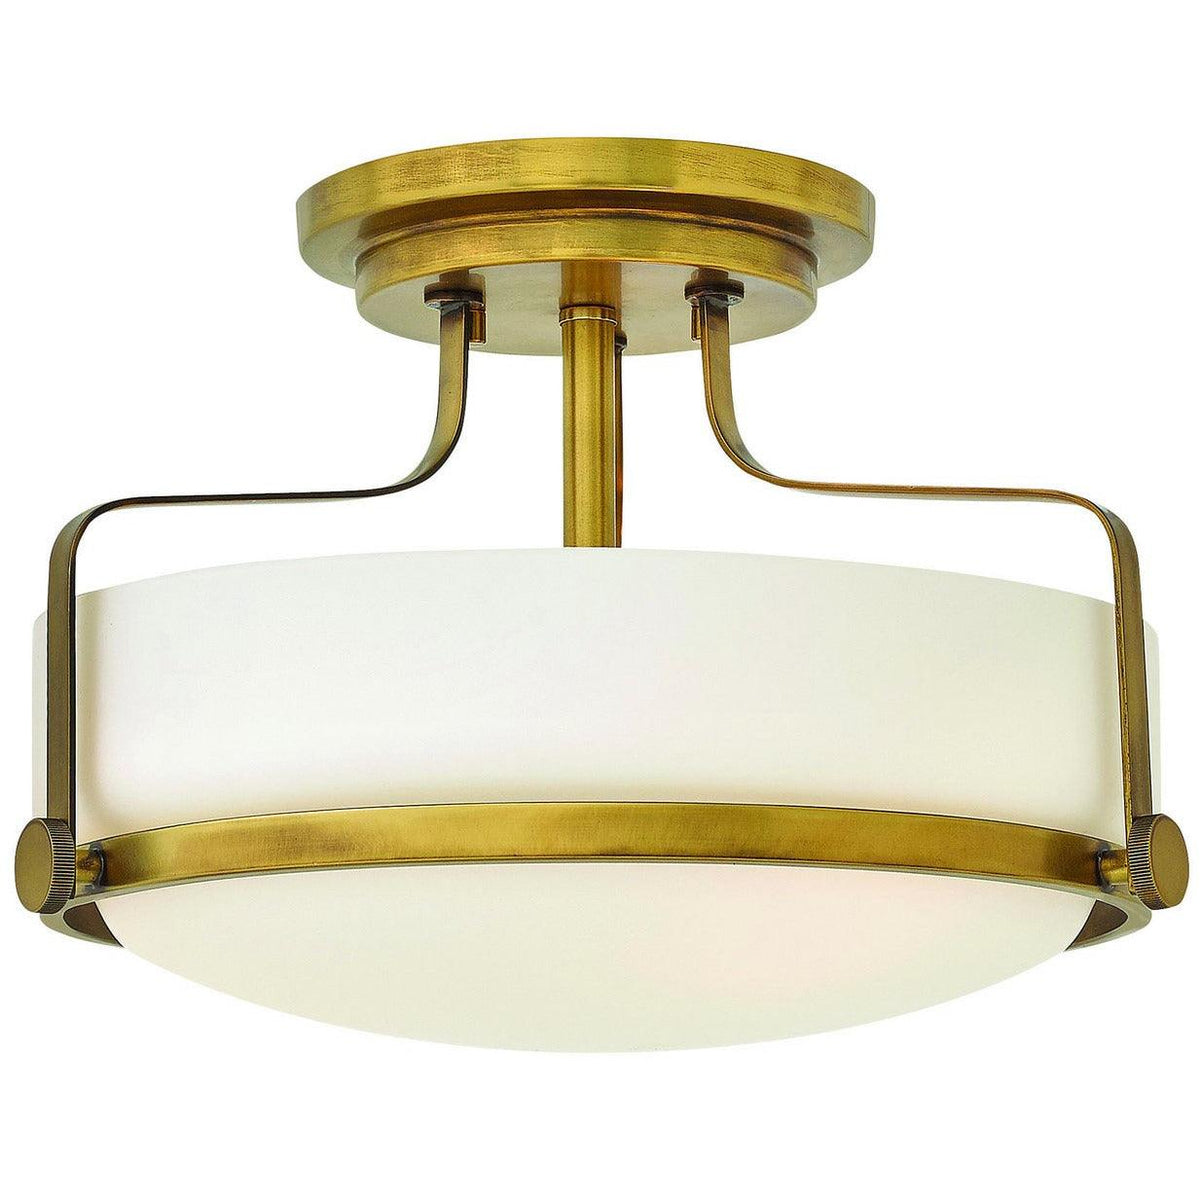 Hinkley Canada - 3641HB-LED - LED Semi-Flush Mount - Harper - Heritage Brass